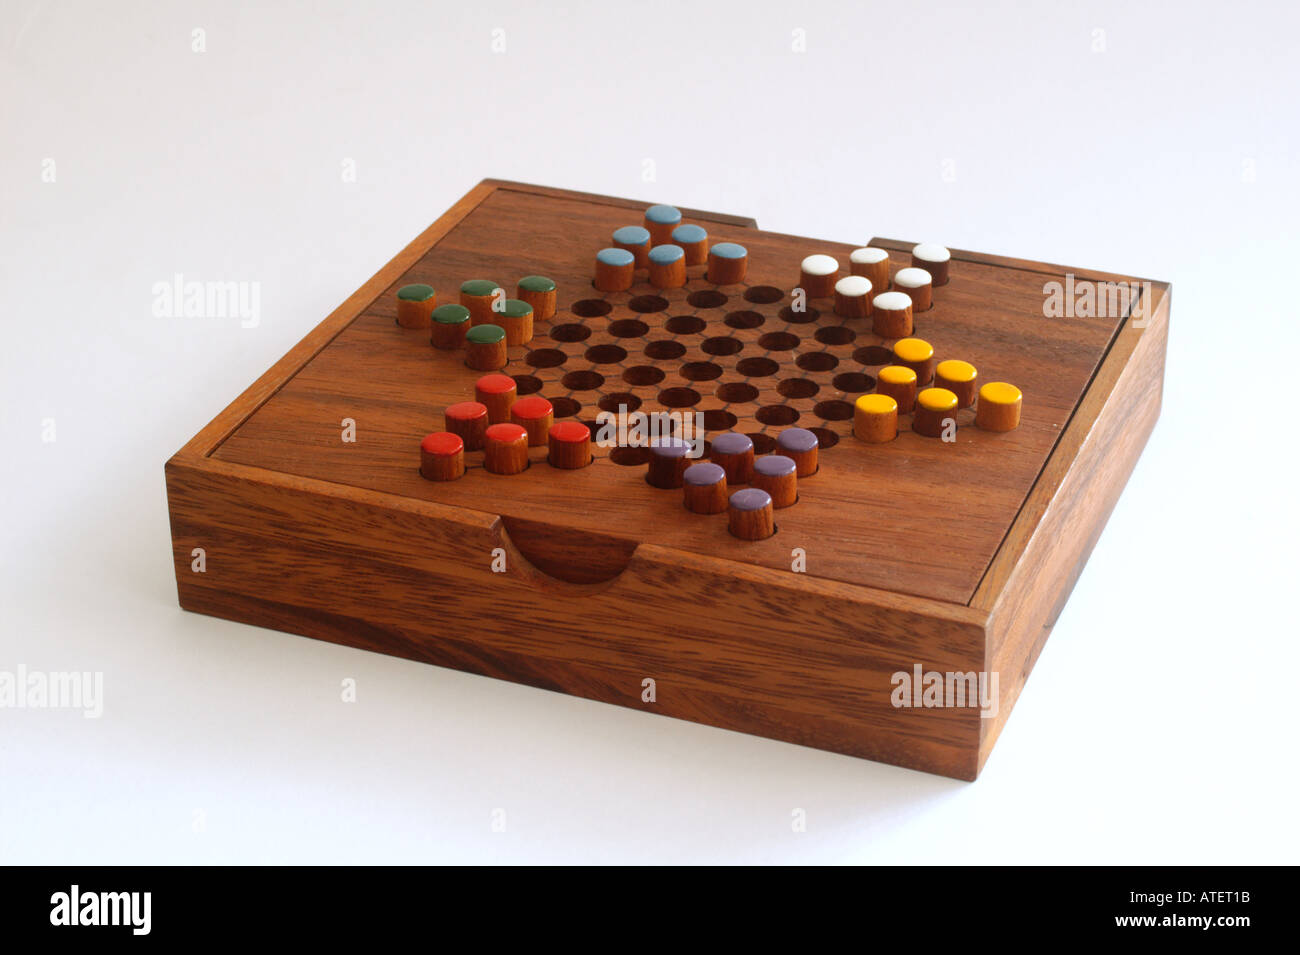 Chinese checkers colour pegs on a wooden board A game of strategy and planning Stock Photo